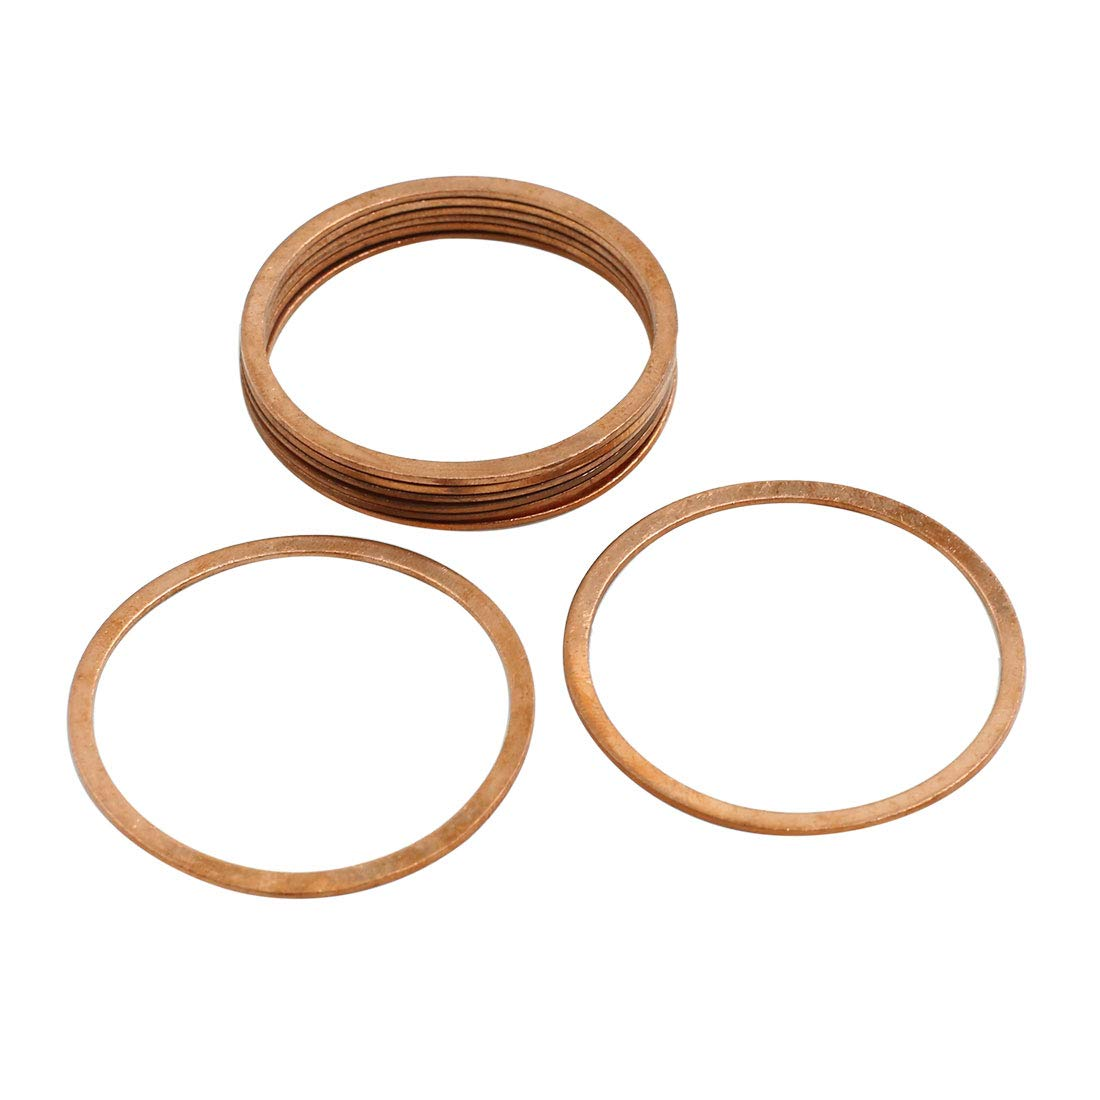 X AUTOHAUX 8 Pcs 40mm Inner Dia Copper Washers Flat Sealing Gasket Rings for Car